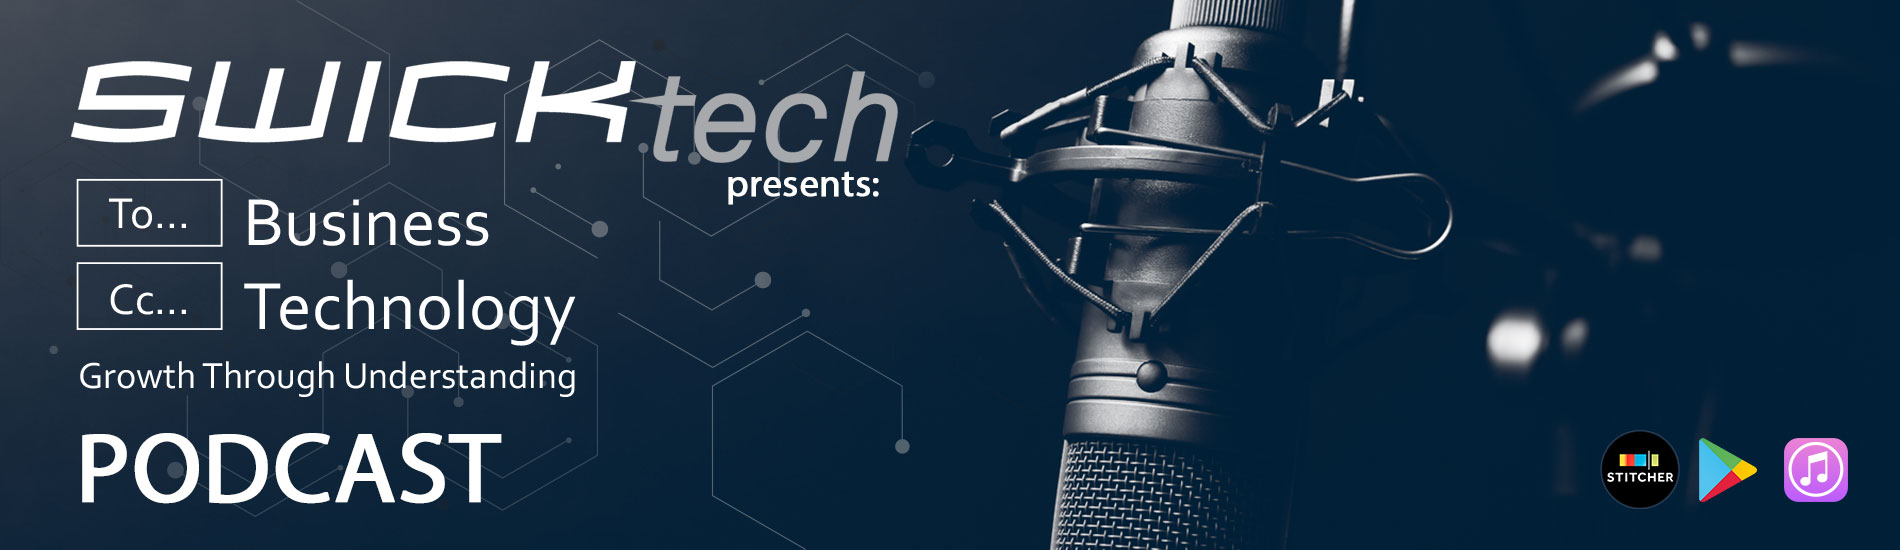 SWICKtech Launches Podcast Banner